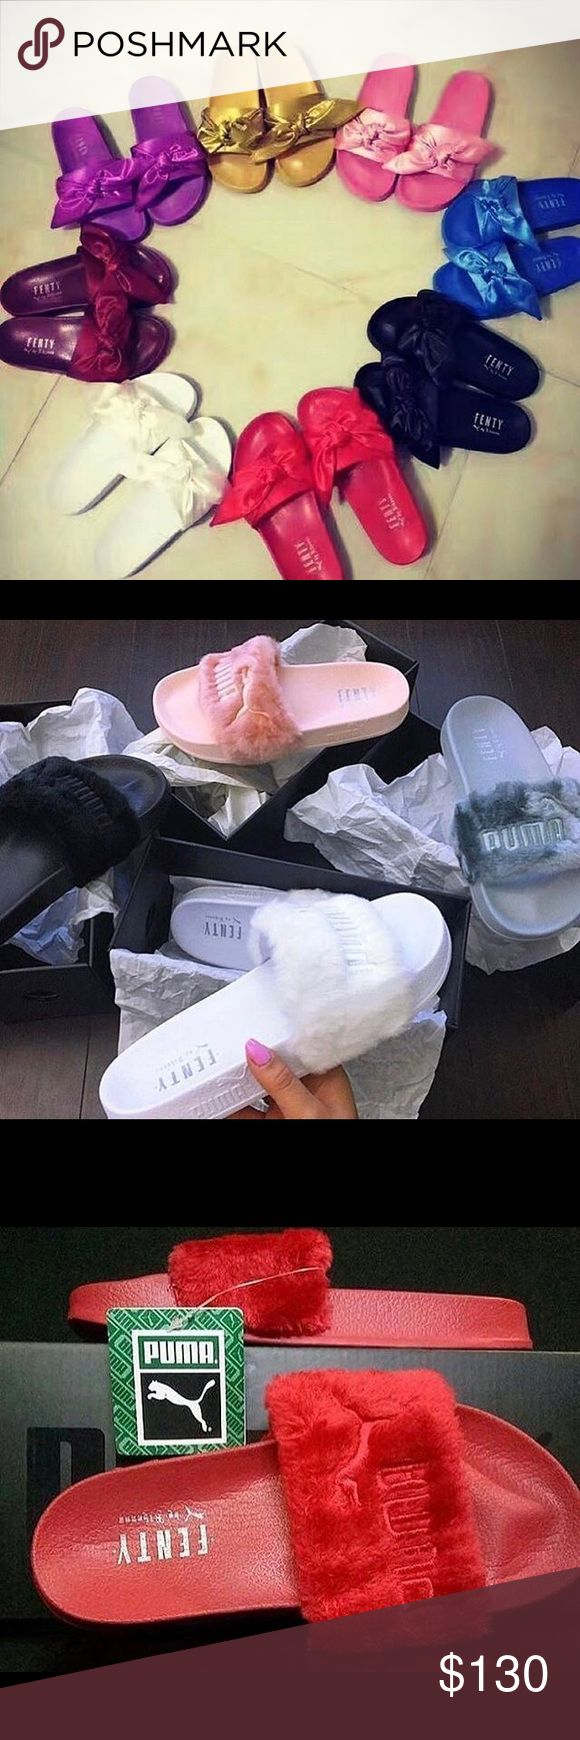 Rihanna puma slides rihanna puma slides all brand new no traded no lower offers all sizes Puma Shoes Sandals